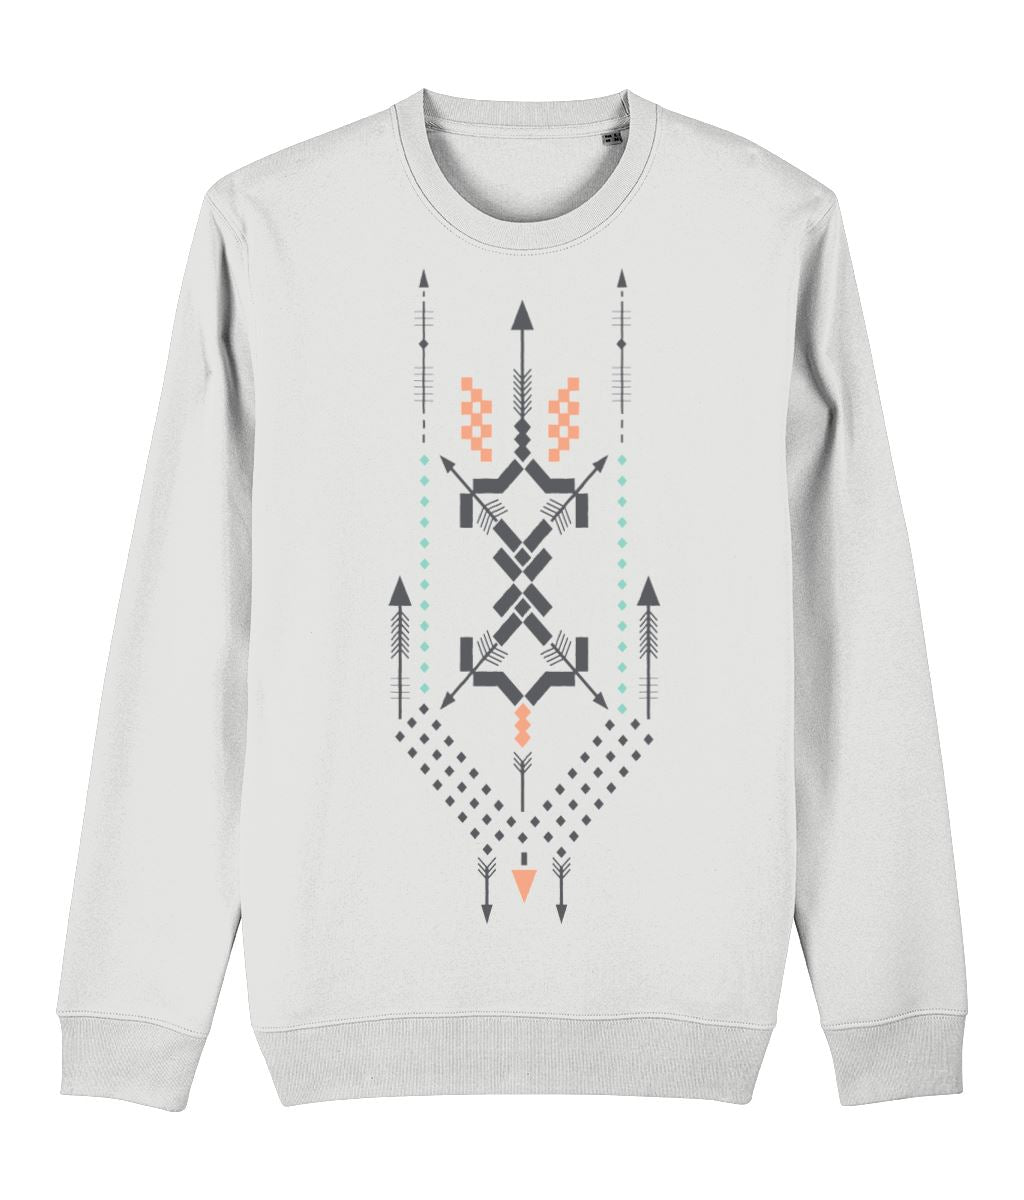 Boho Totem III Sweatshirt Clothing IndianBelieves White X-Small